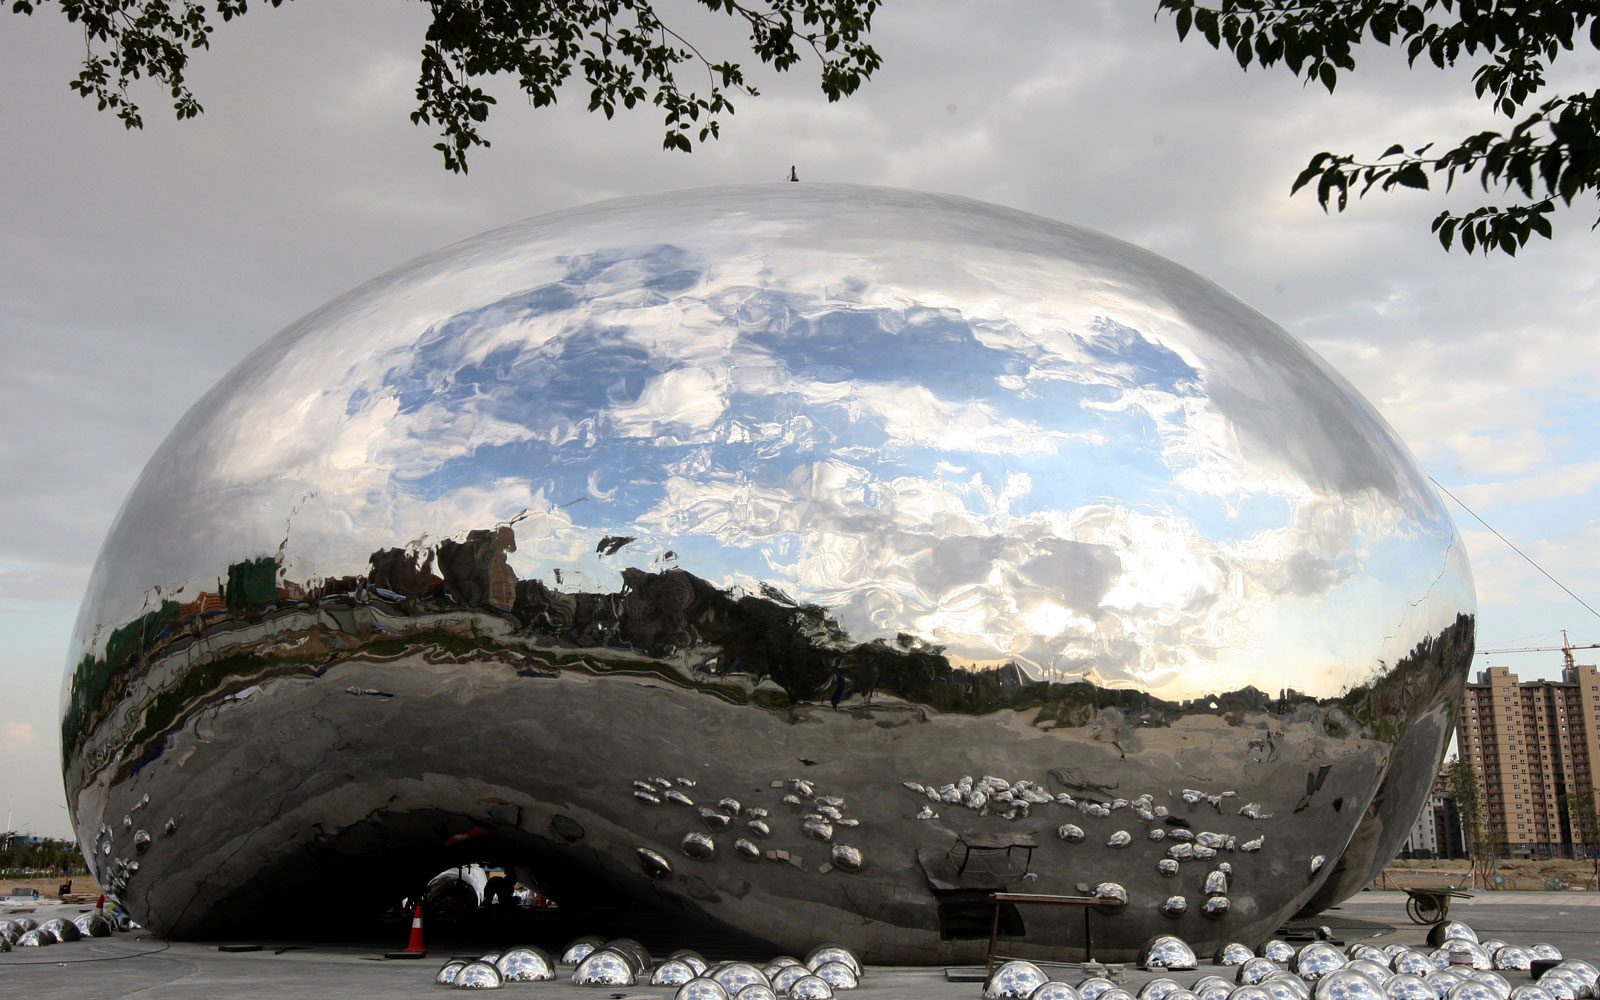 A New Public Sculpture in China Looks Just Like Chicago's Iconic Cloud Gate